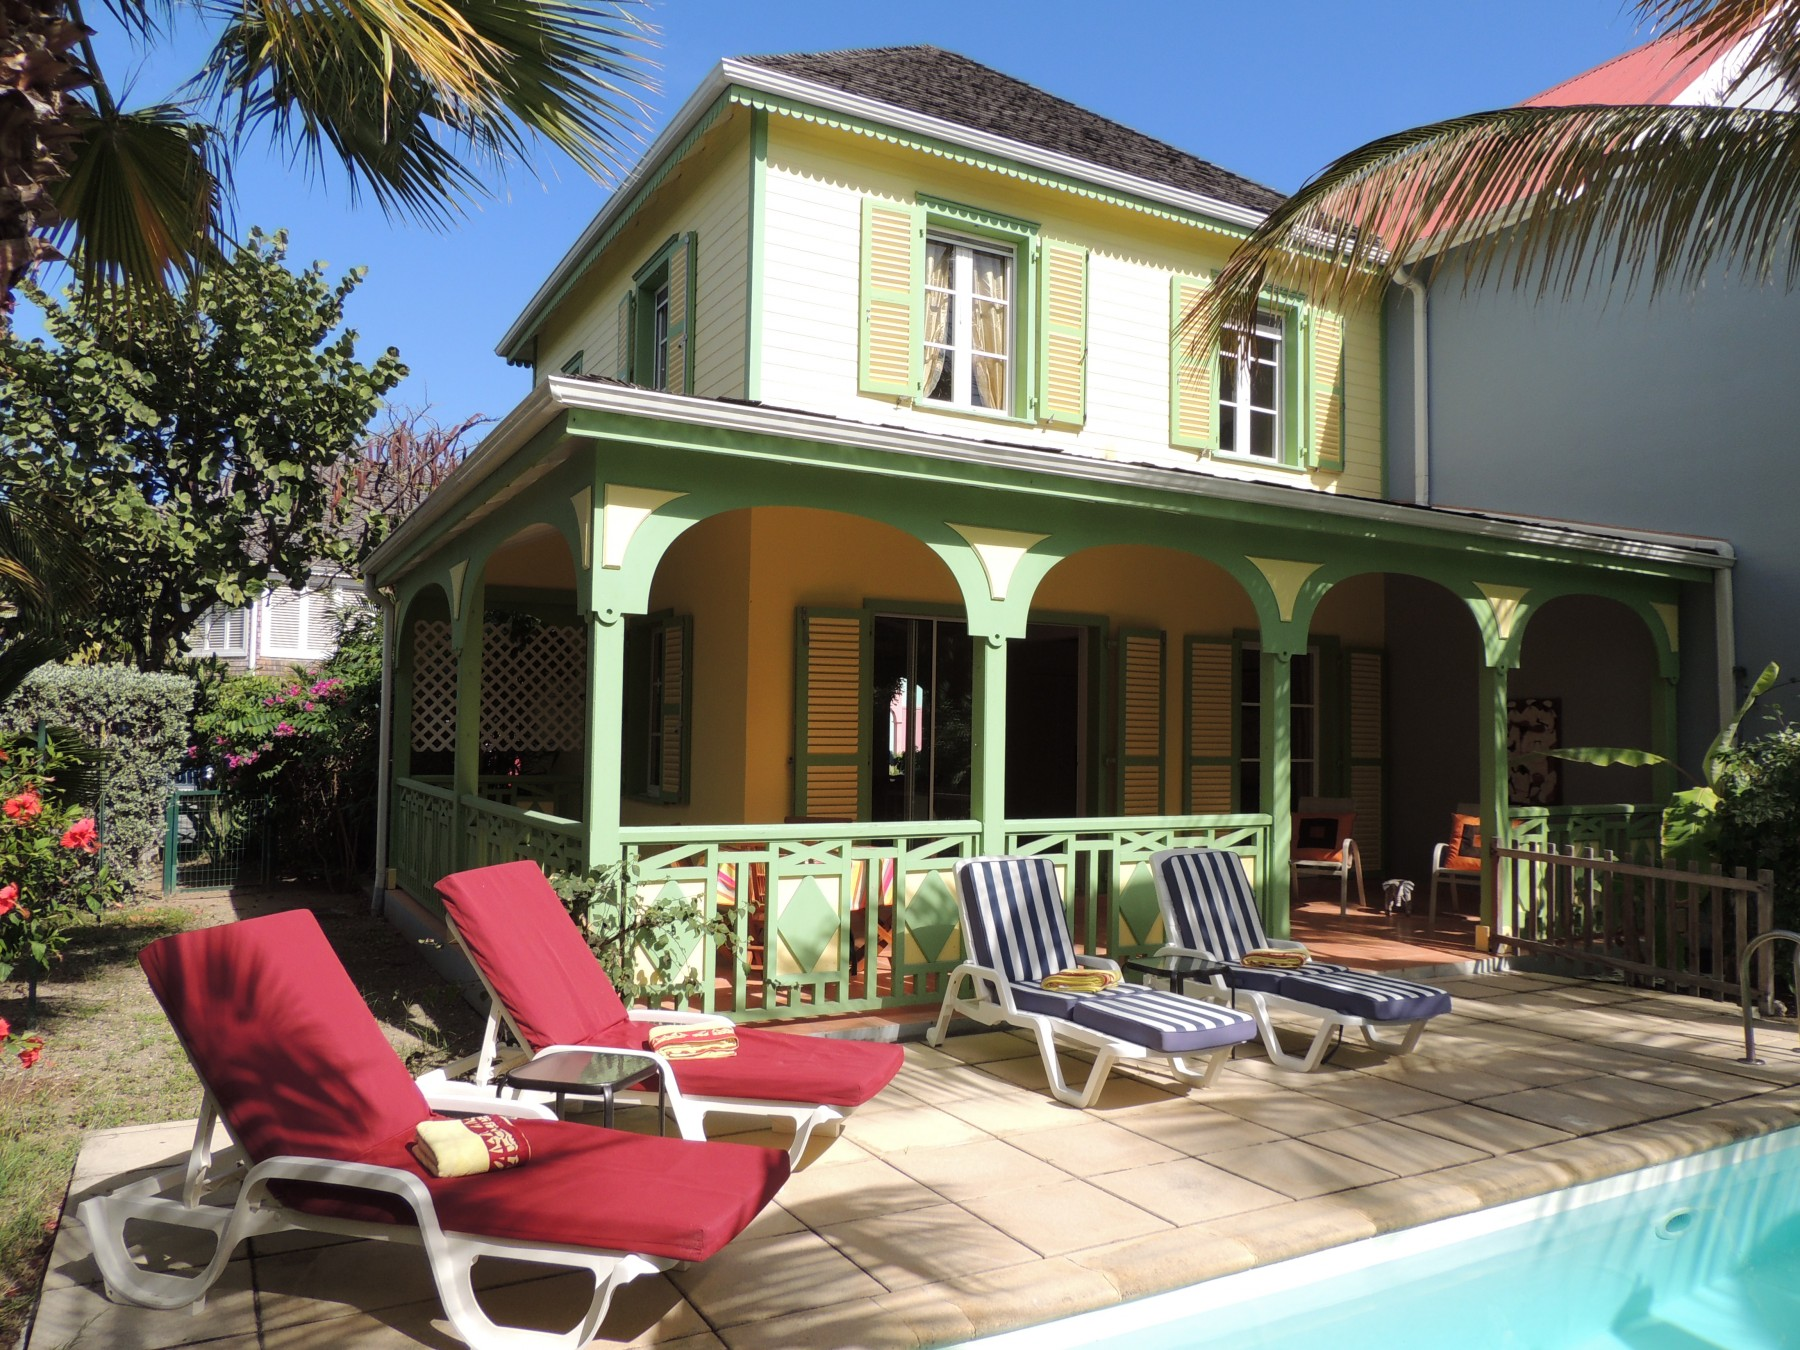 houses in orient bay sunlight villa with private pool 3min by